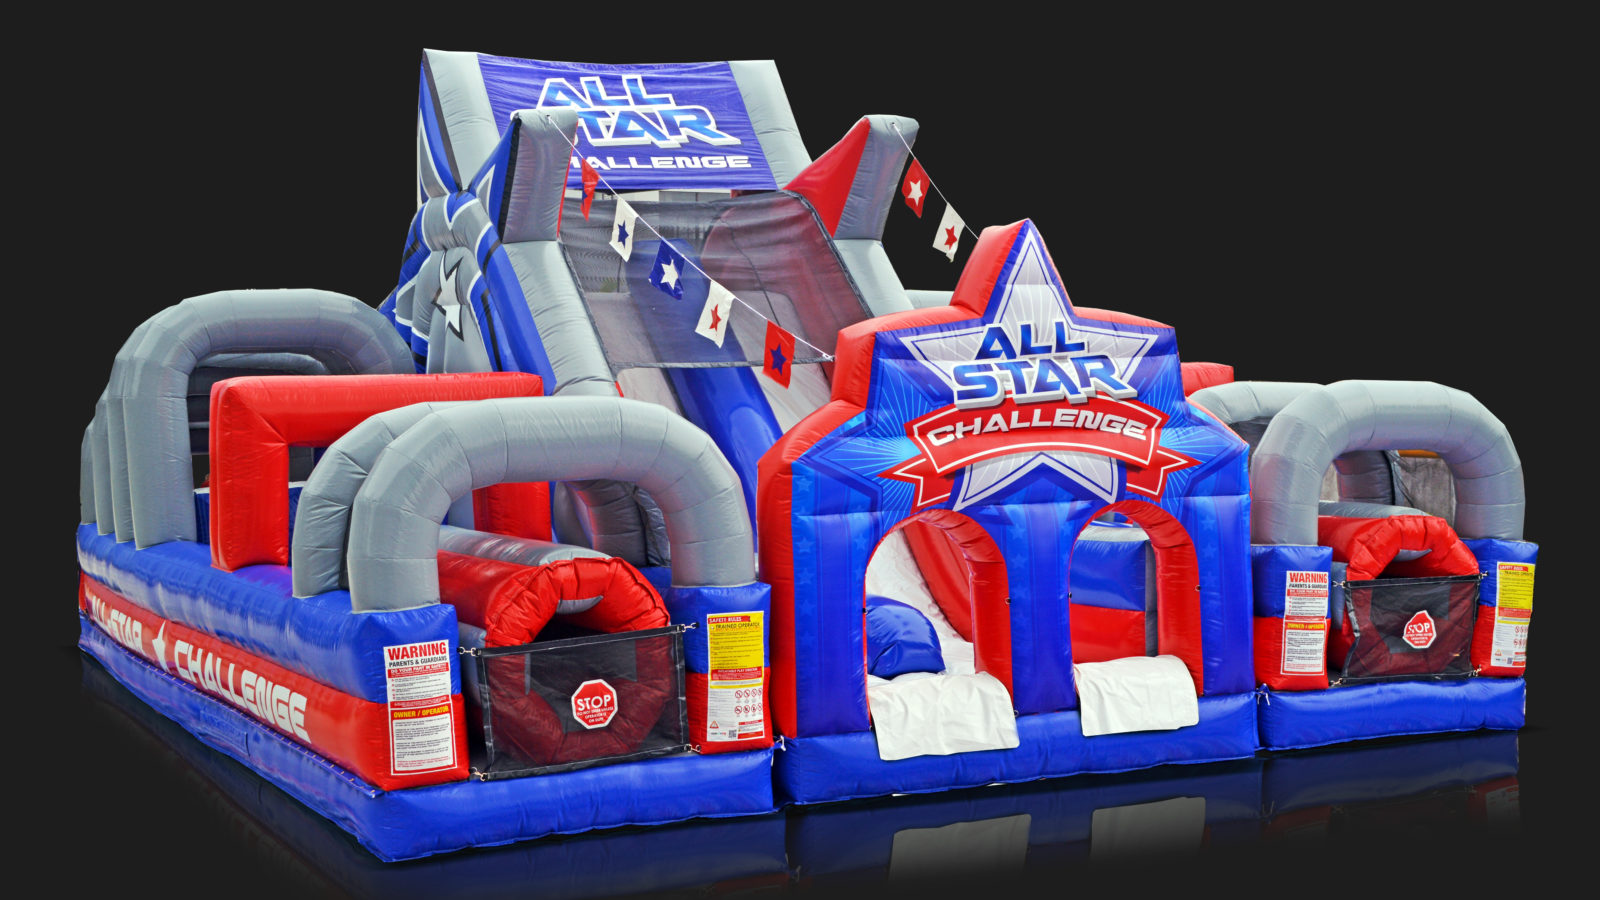 All-Star Challenge Obstacle Course